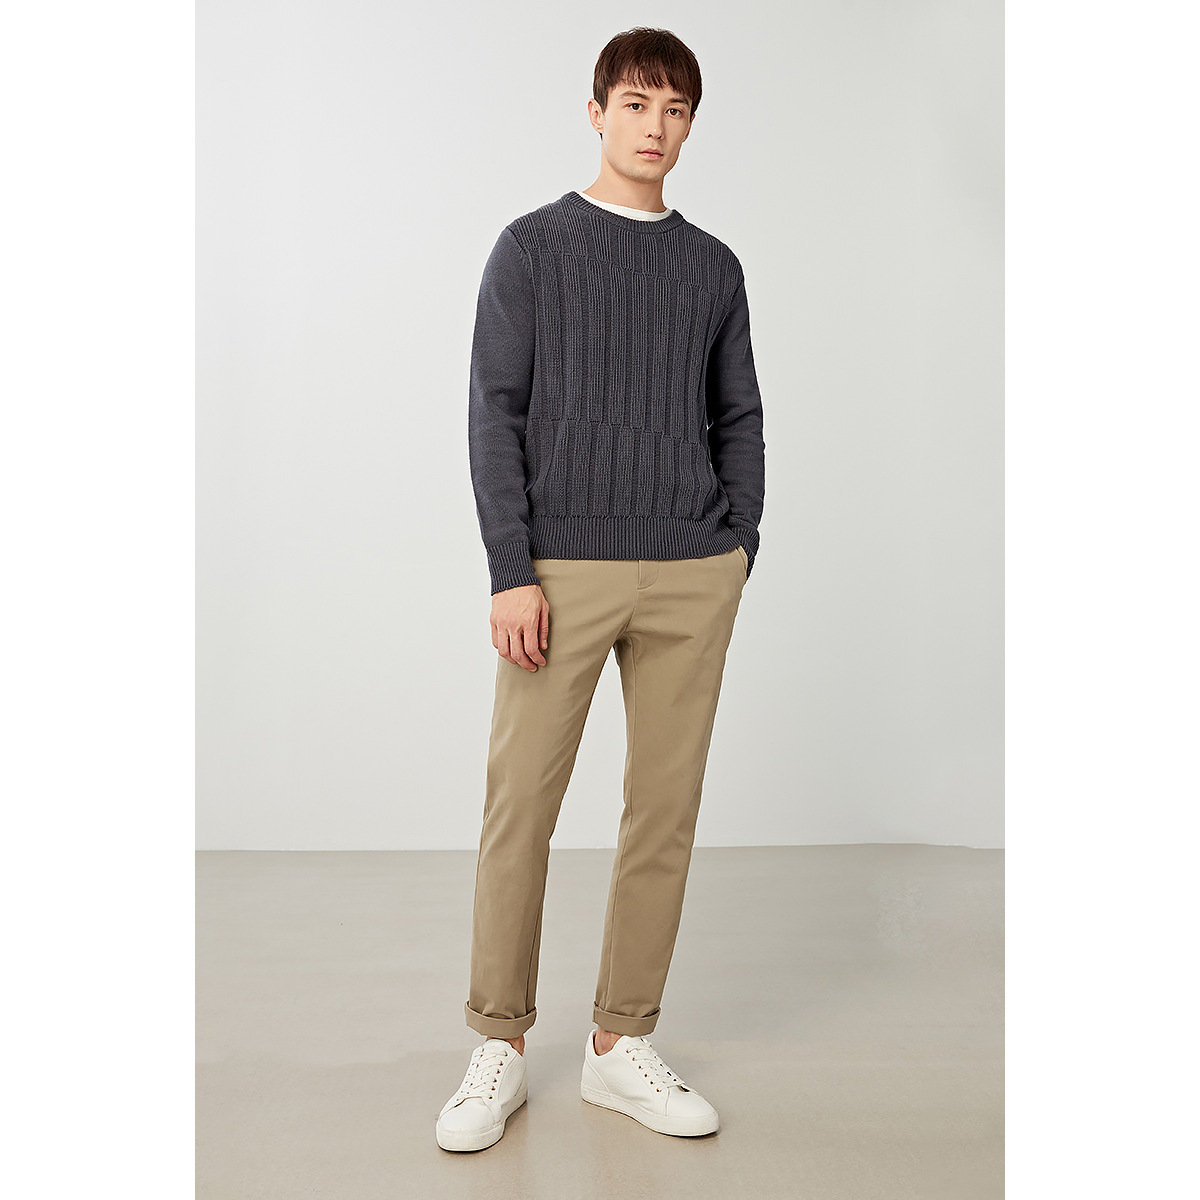 Autumn and winter new mens thick long sleeve sweater fashion solid color Pullover mens undergarment slim mens fashion